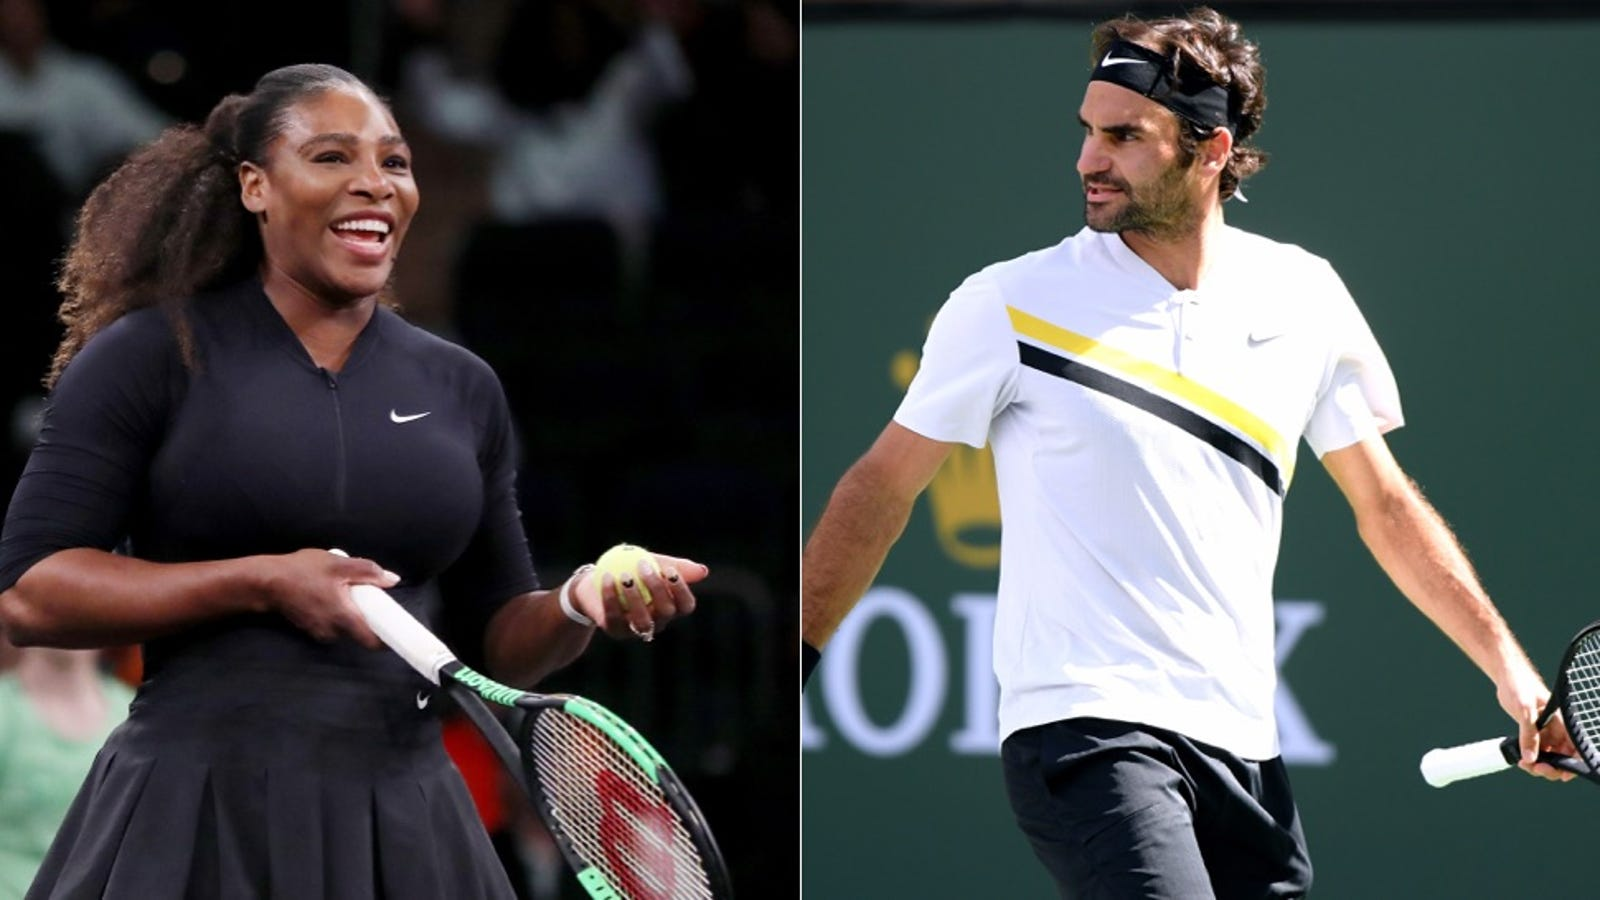 Roger Federer Says Serena Williams Is The Greatest Tennis Player Of All Time, Period